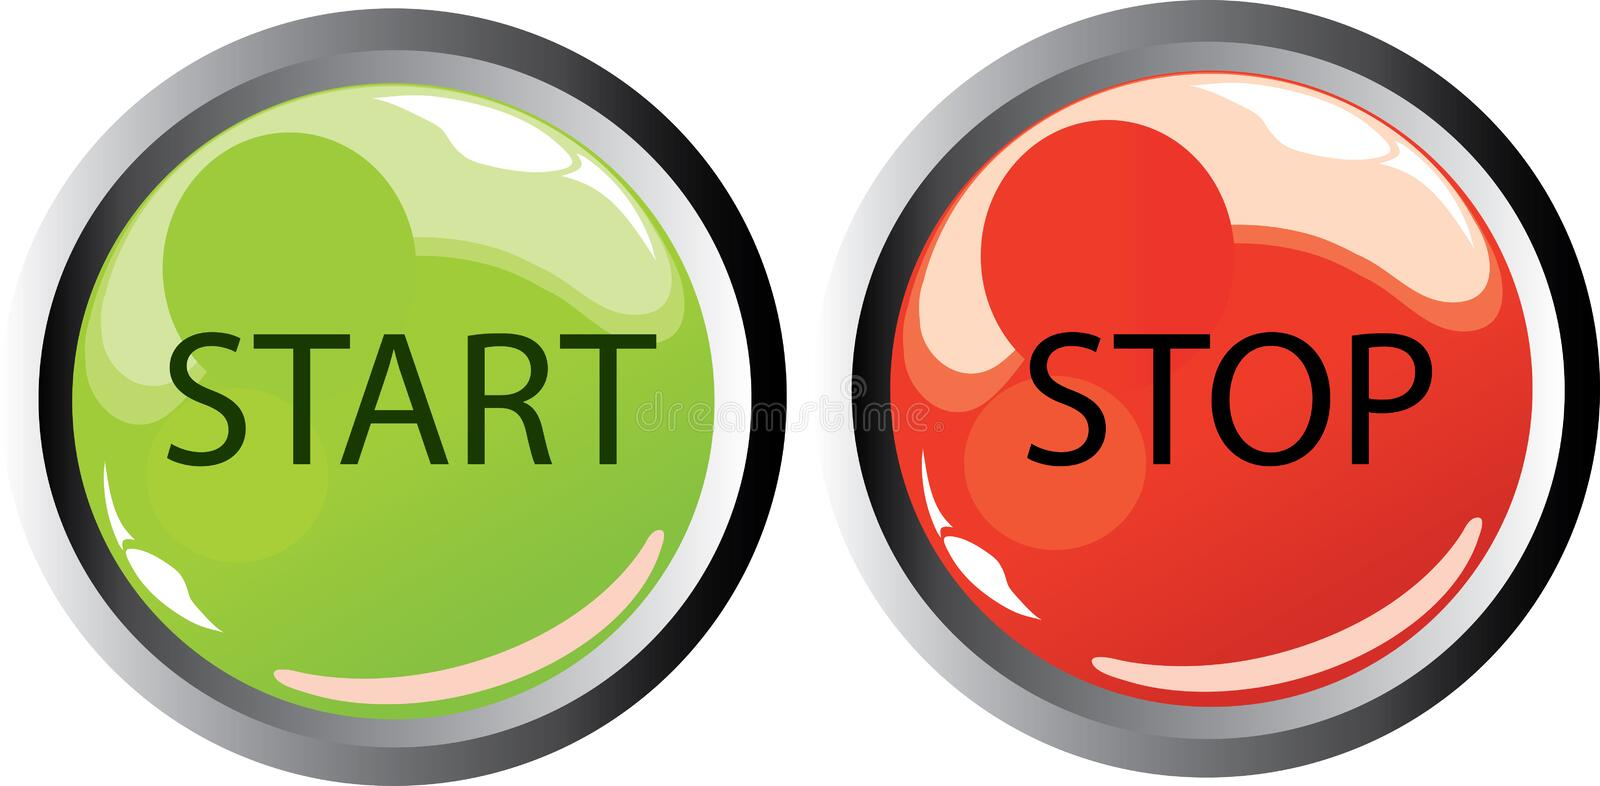 Start stop buttons vector illustration